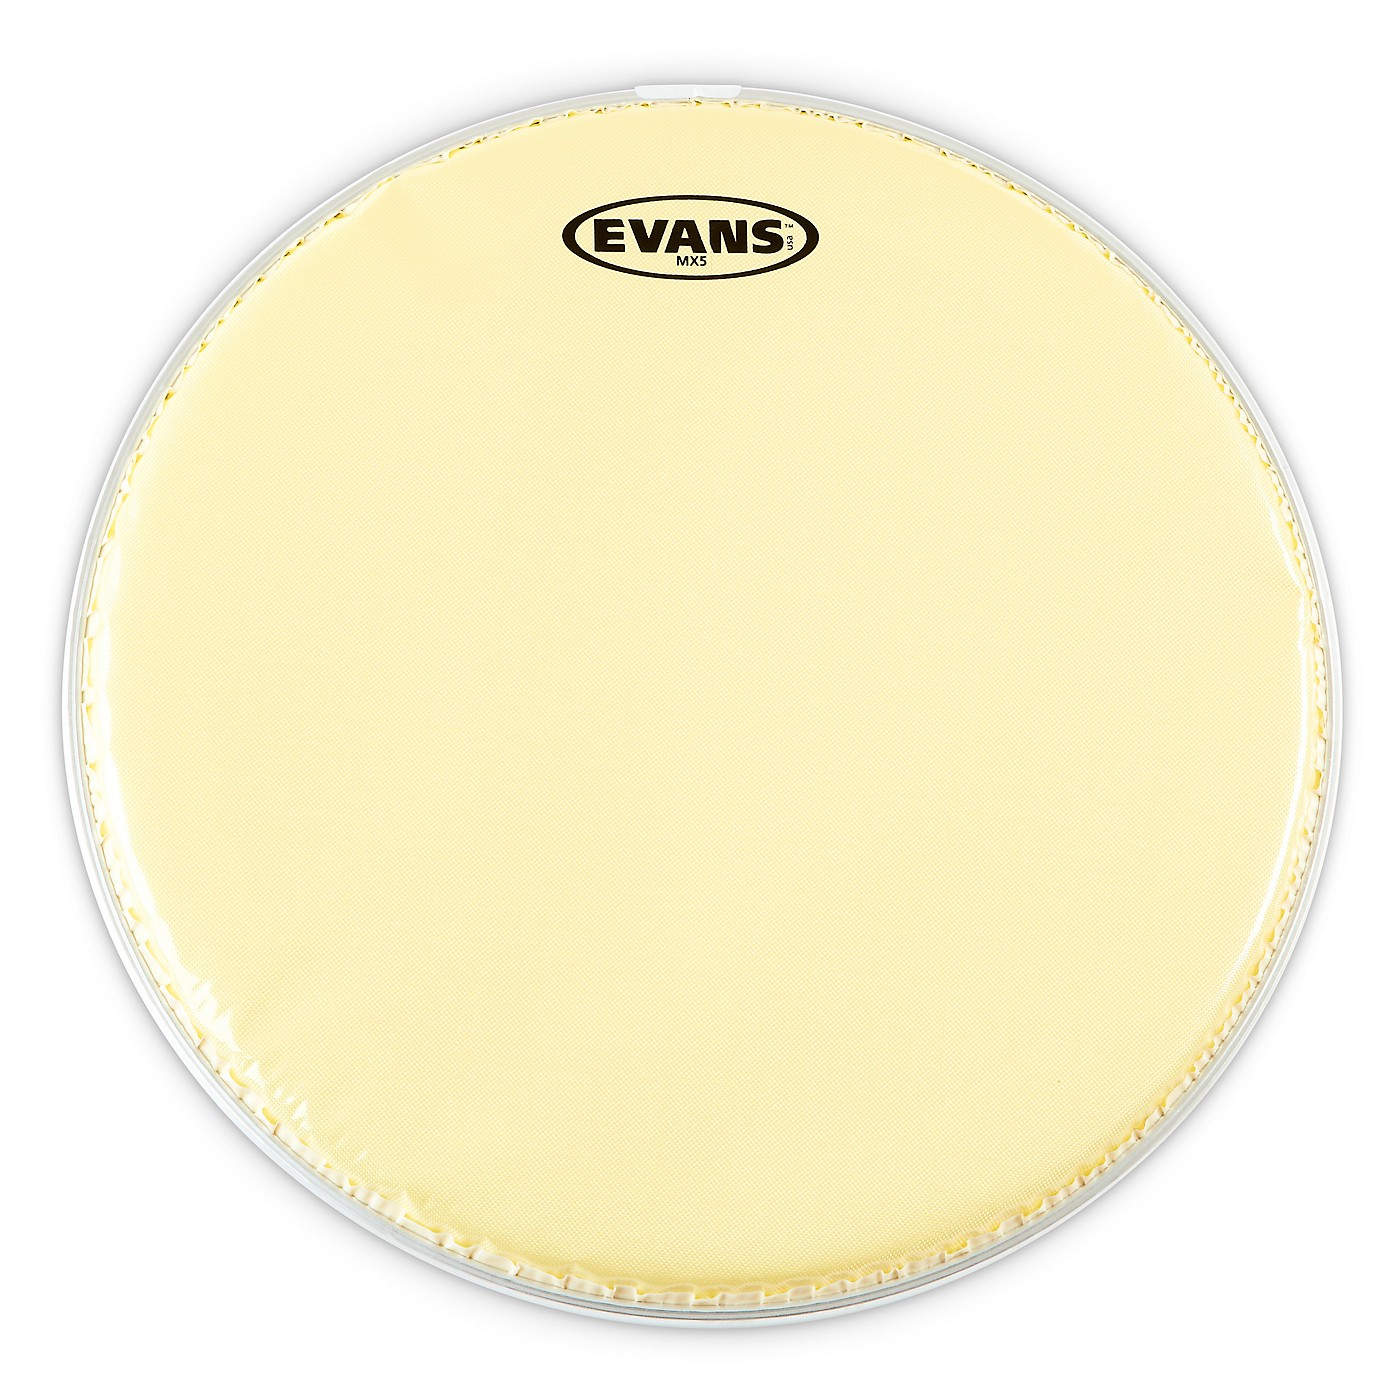 Evans MX5 Snare Side Head thumbnail